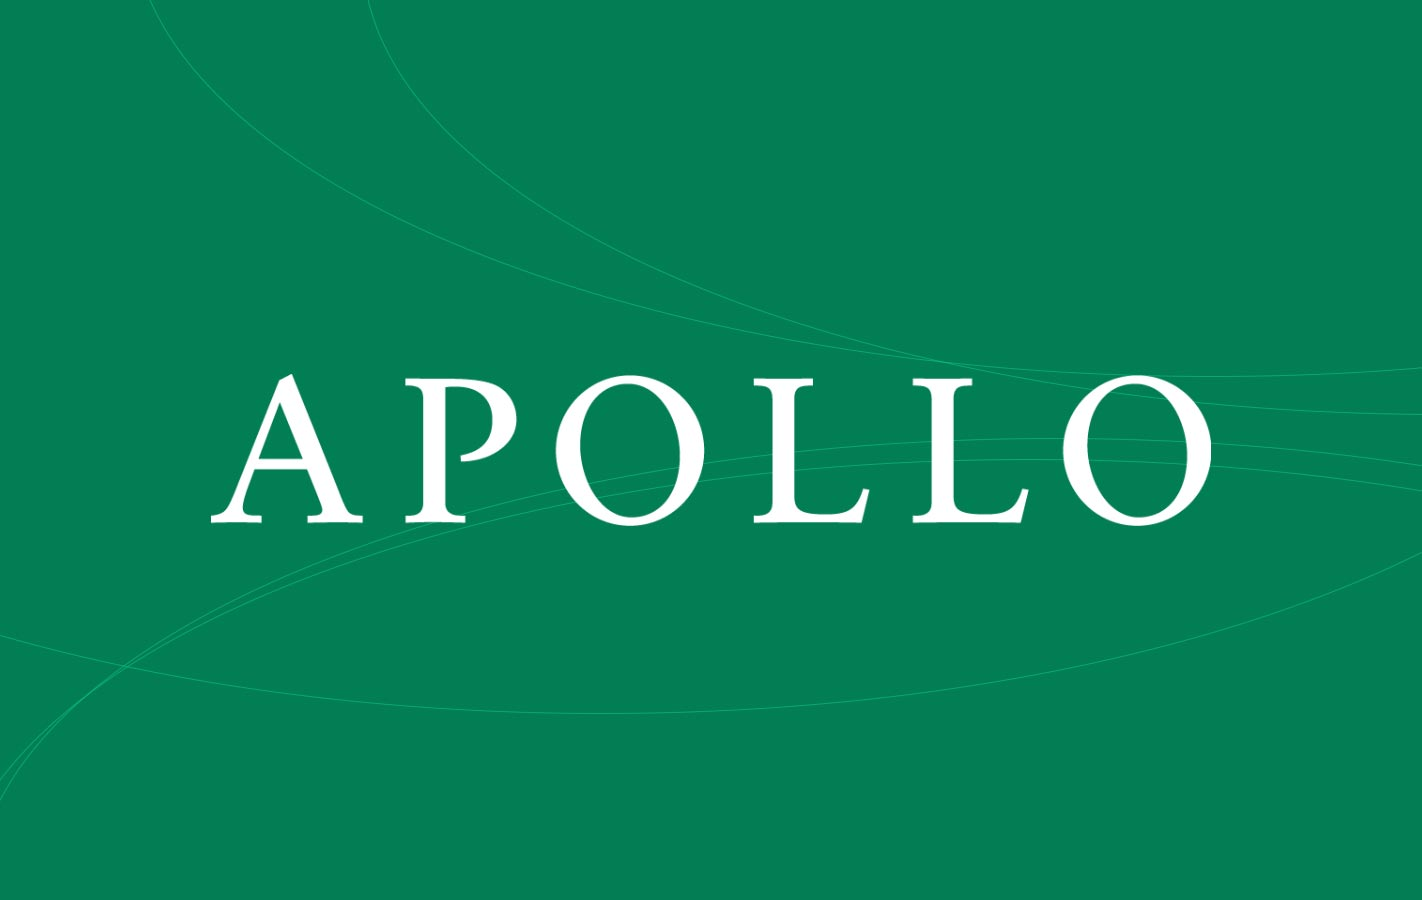 Apollo Record Results Amidst Turmoil